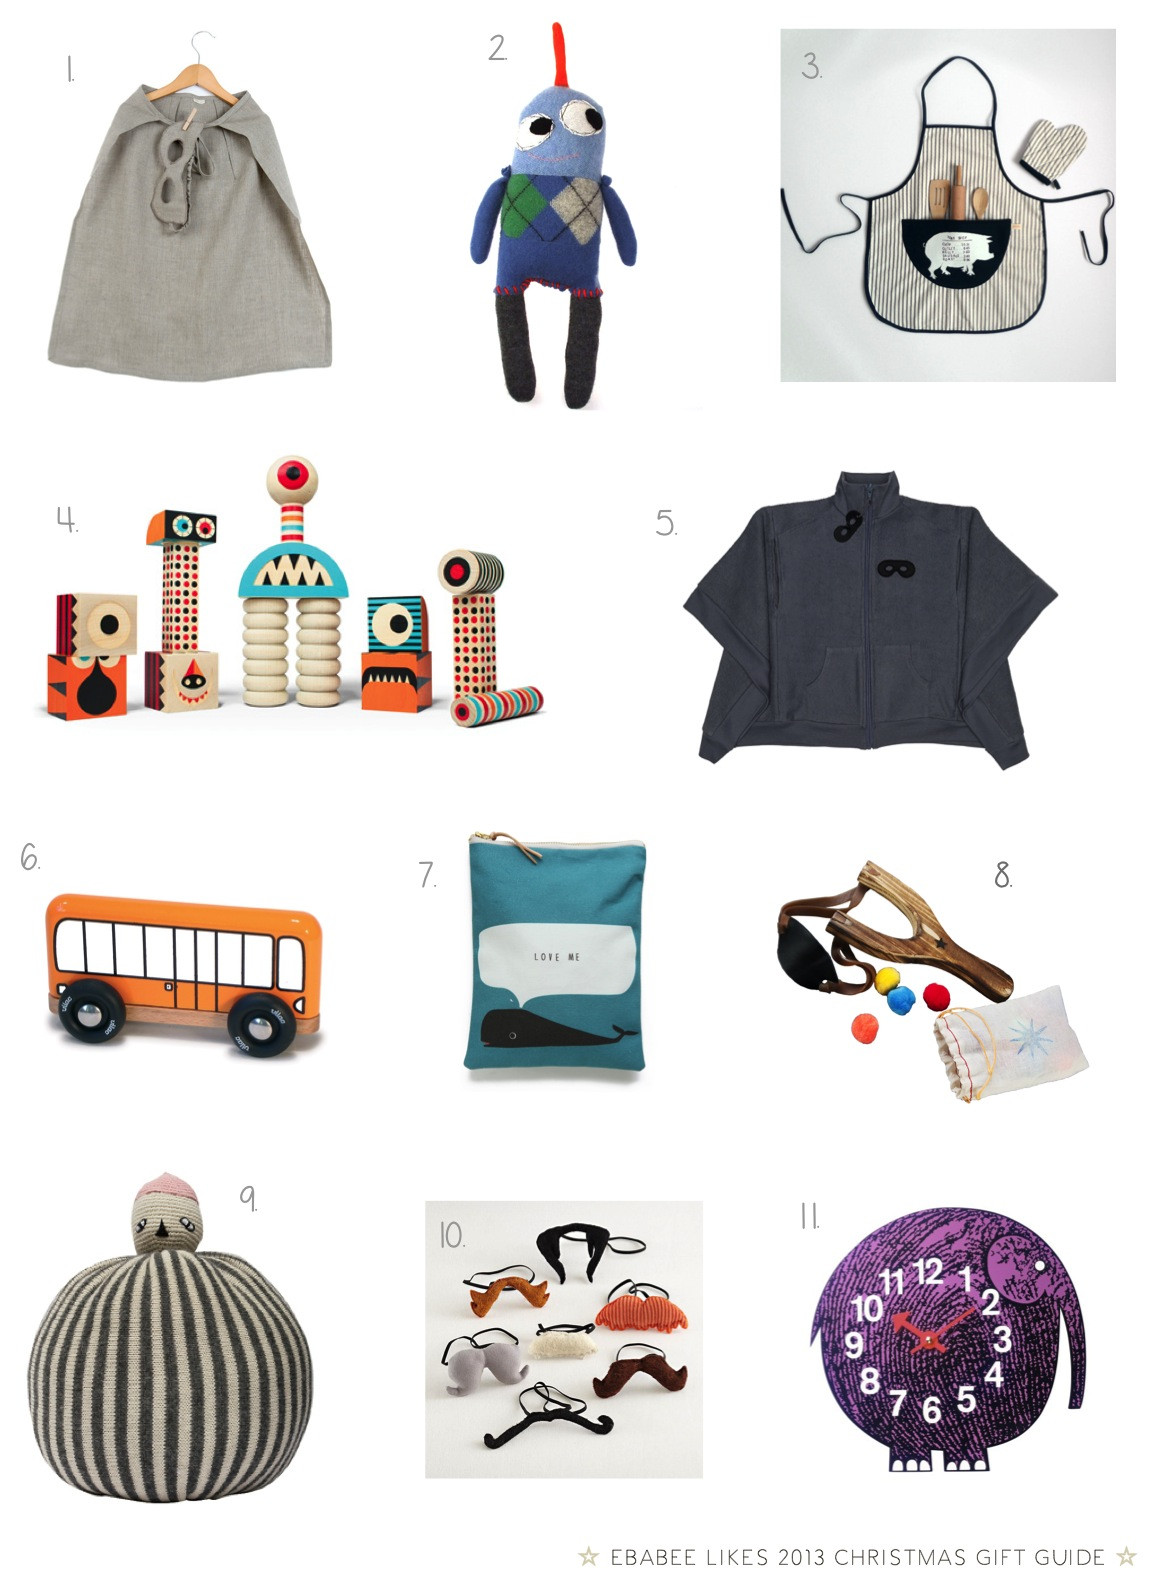 Best ideas about Christmas Gift Ideas For Boys . Save or Pin ebabee likes Gifts Archives ebabee likes Now.